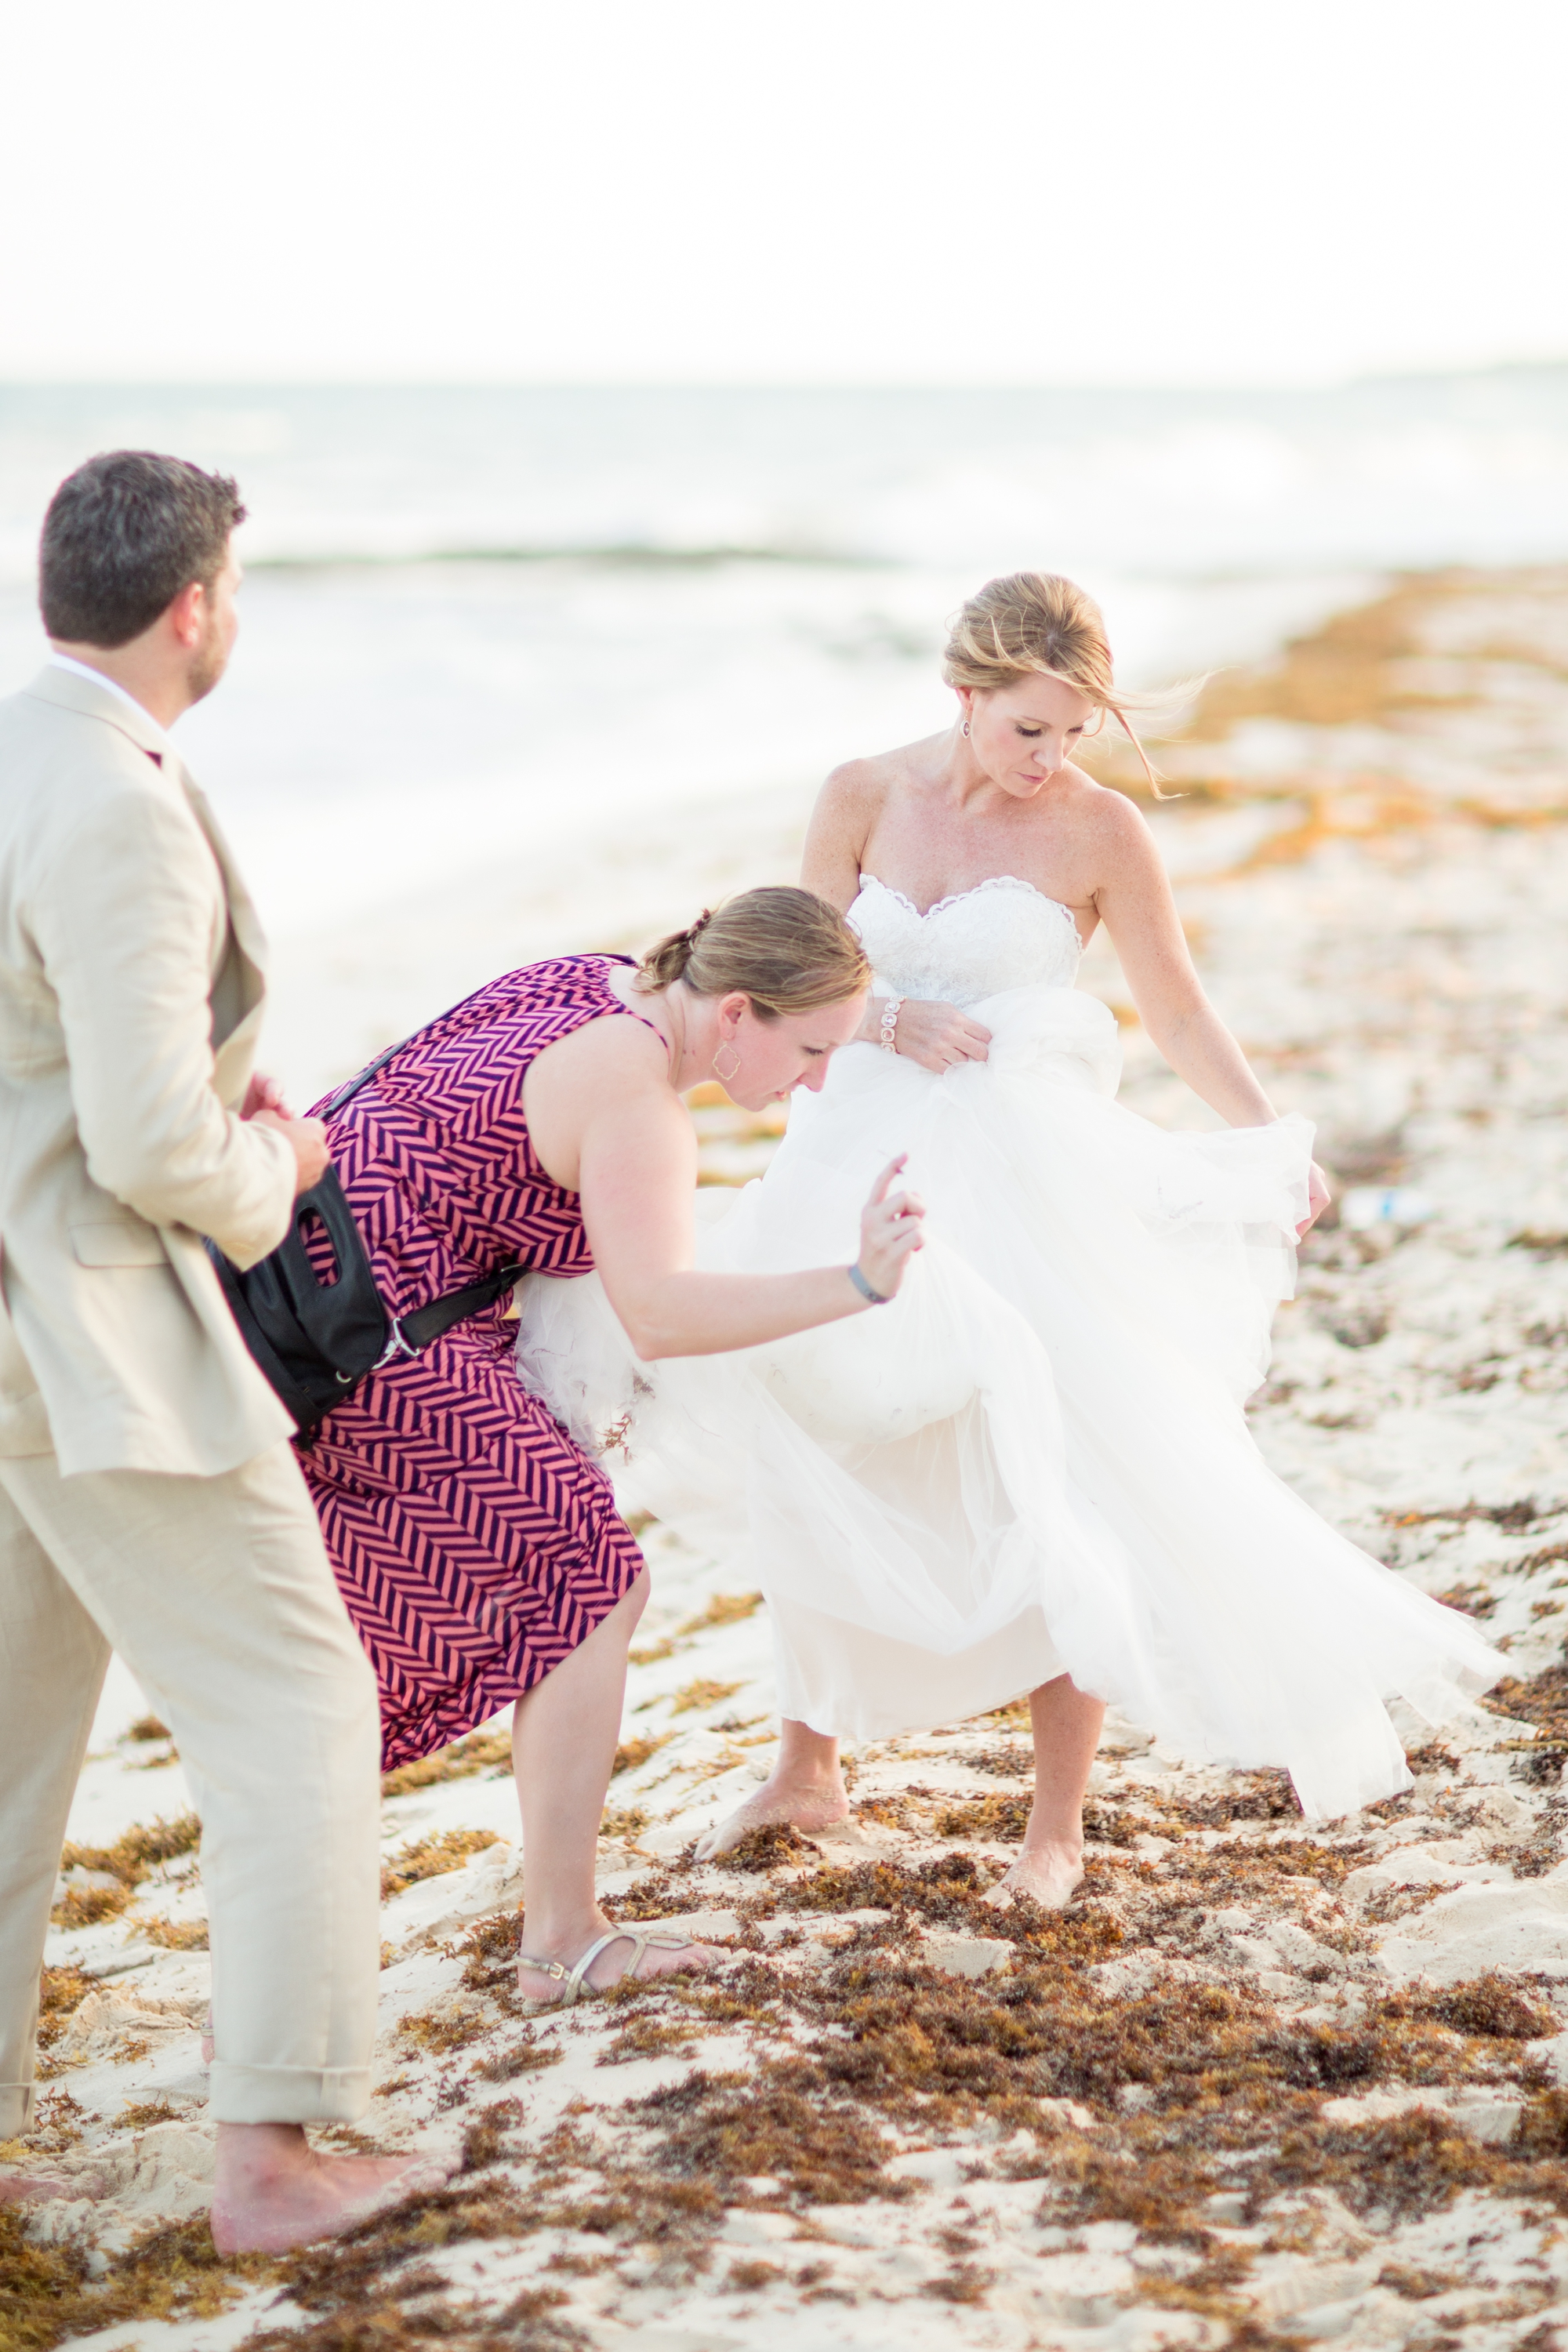 Trying to get some of the seaweed out of the dress!